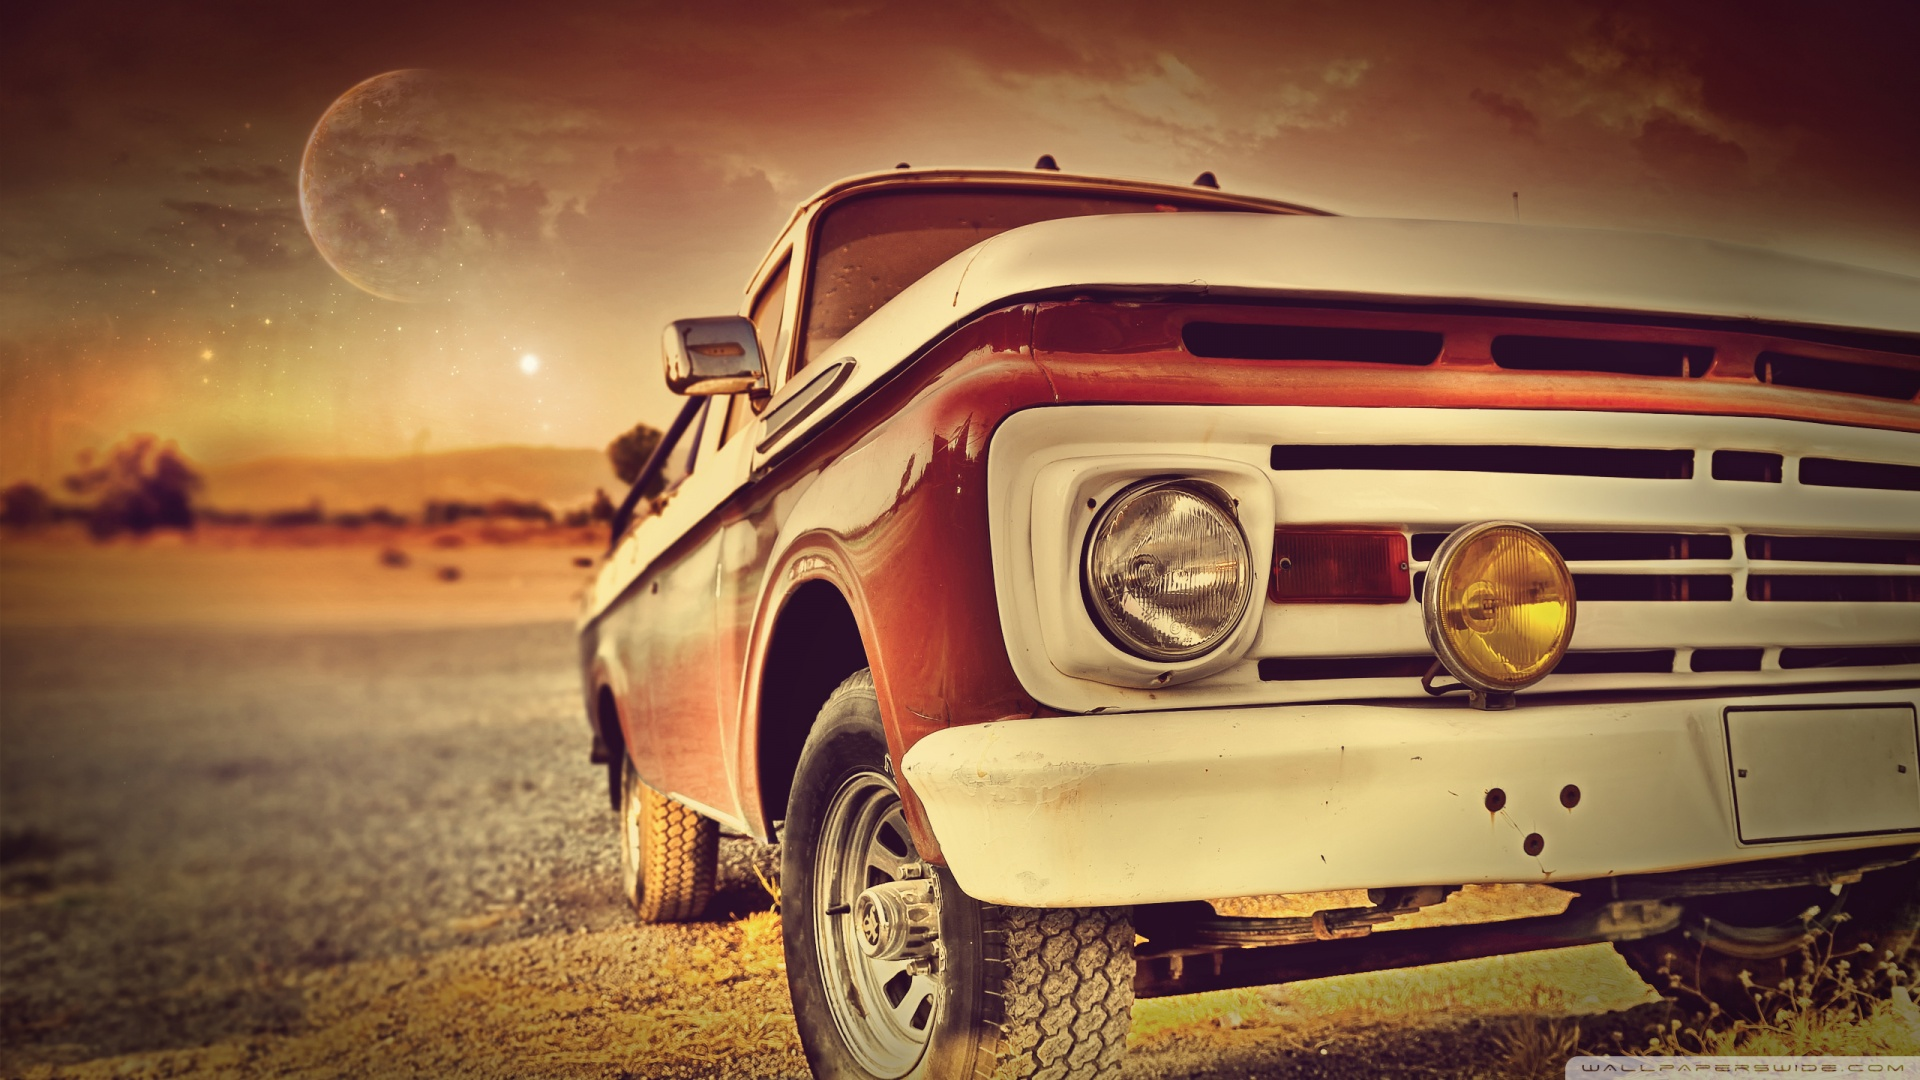 Vintage Photography Wallpapers